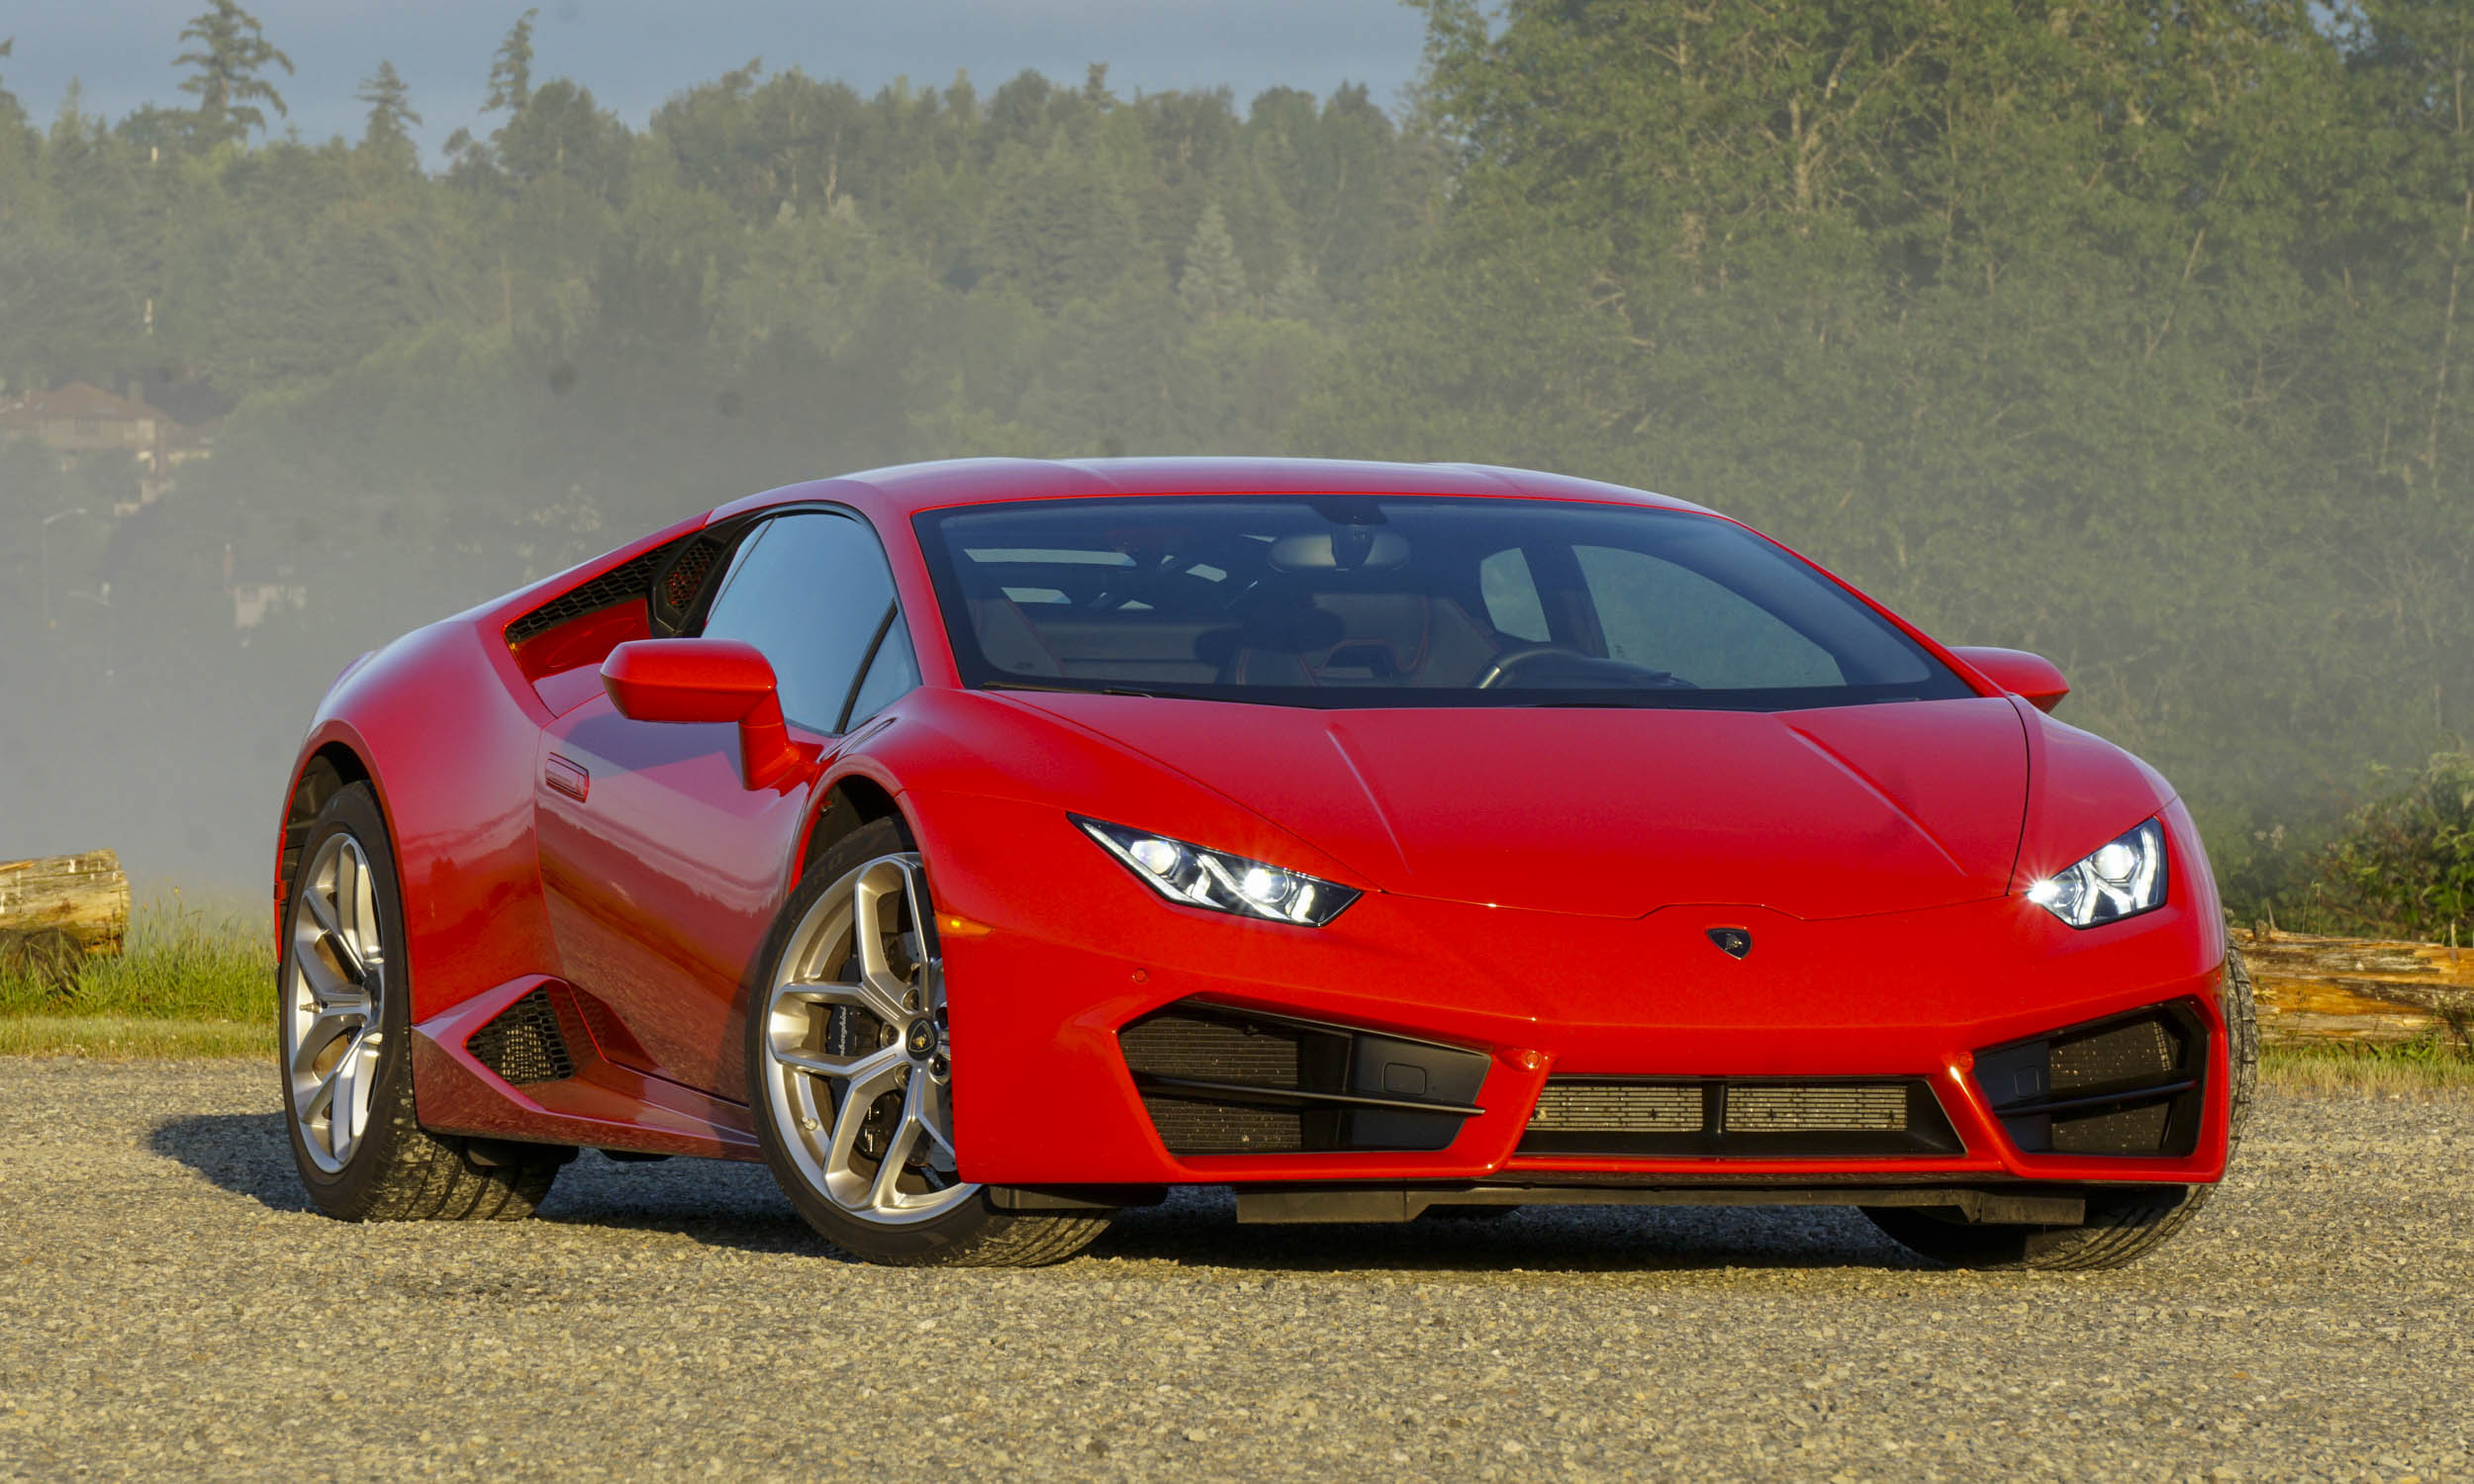 lamborghini huracan gt price top 2017 lamborghini price. Black Bedroom Furniture Sets. Home Design Ideas